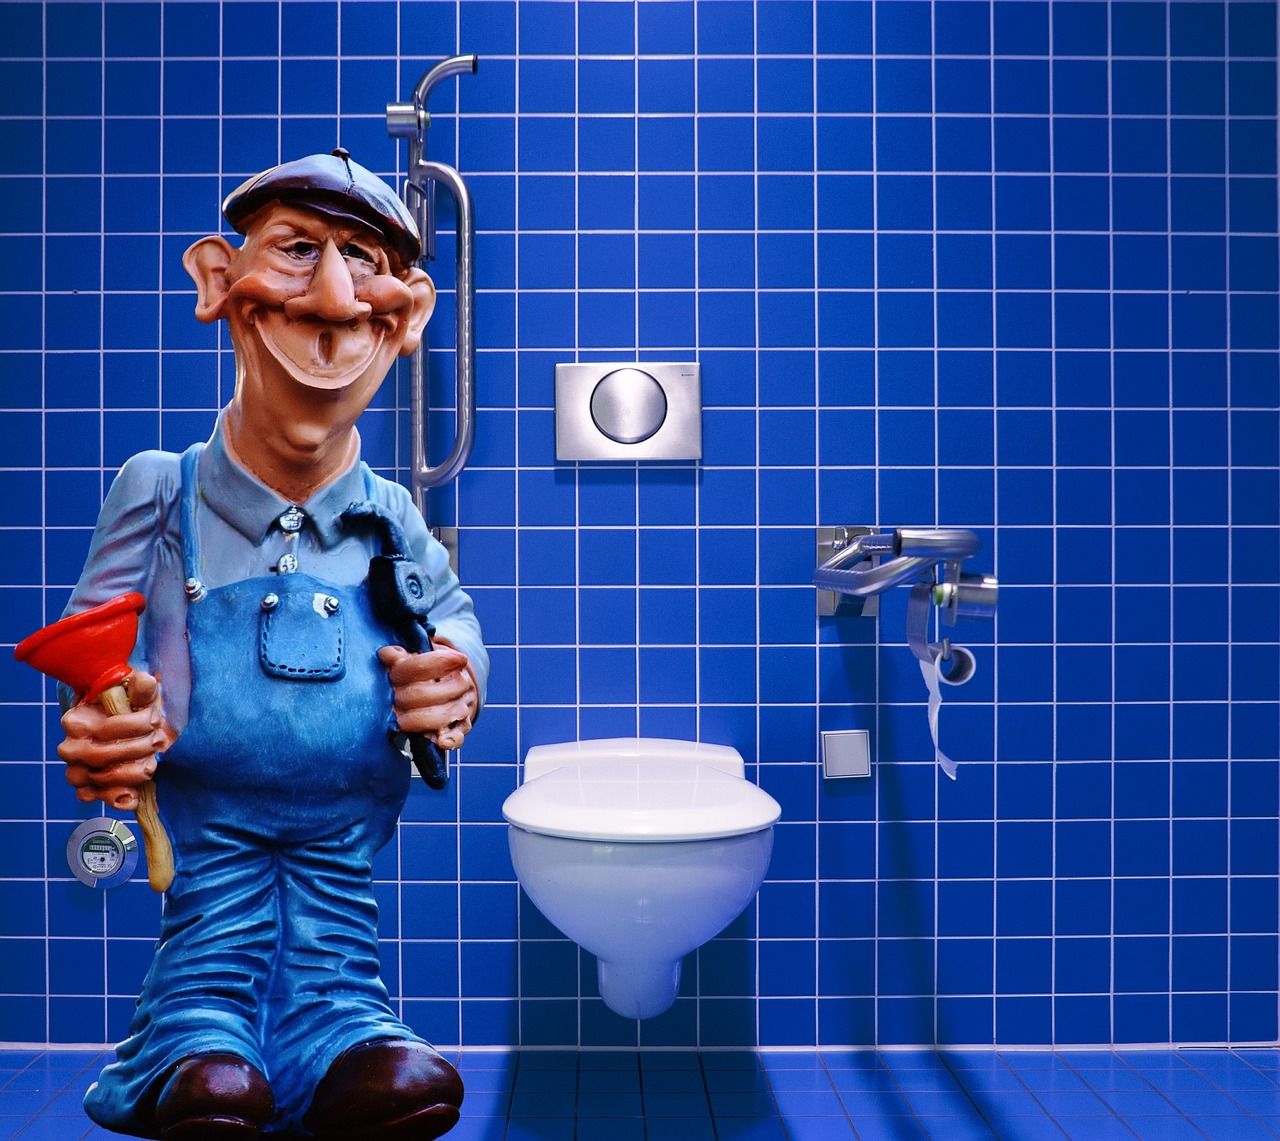 90 Days with Black Pearl of Sweden – Day 19 – Toilet fix